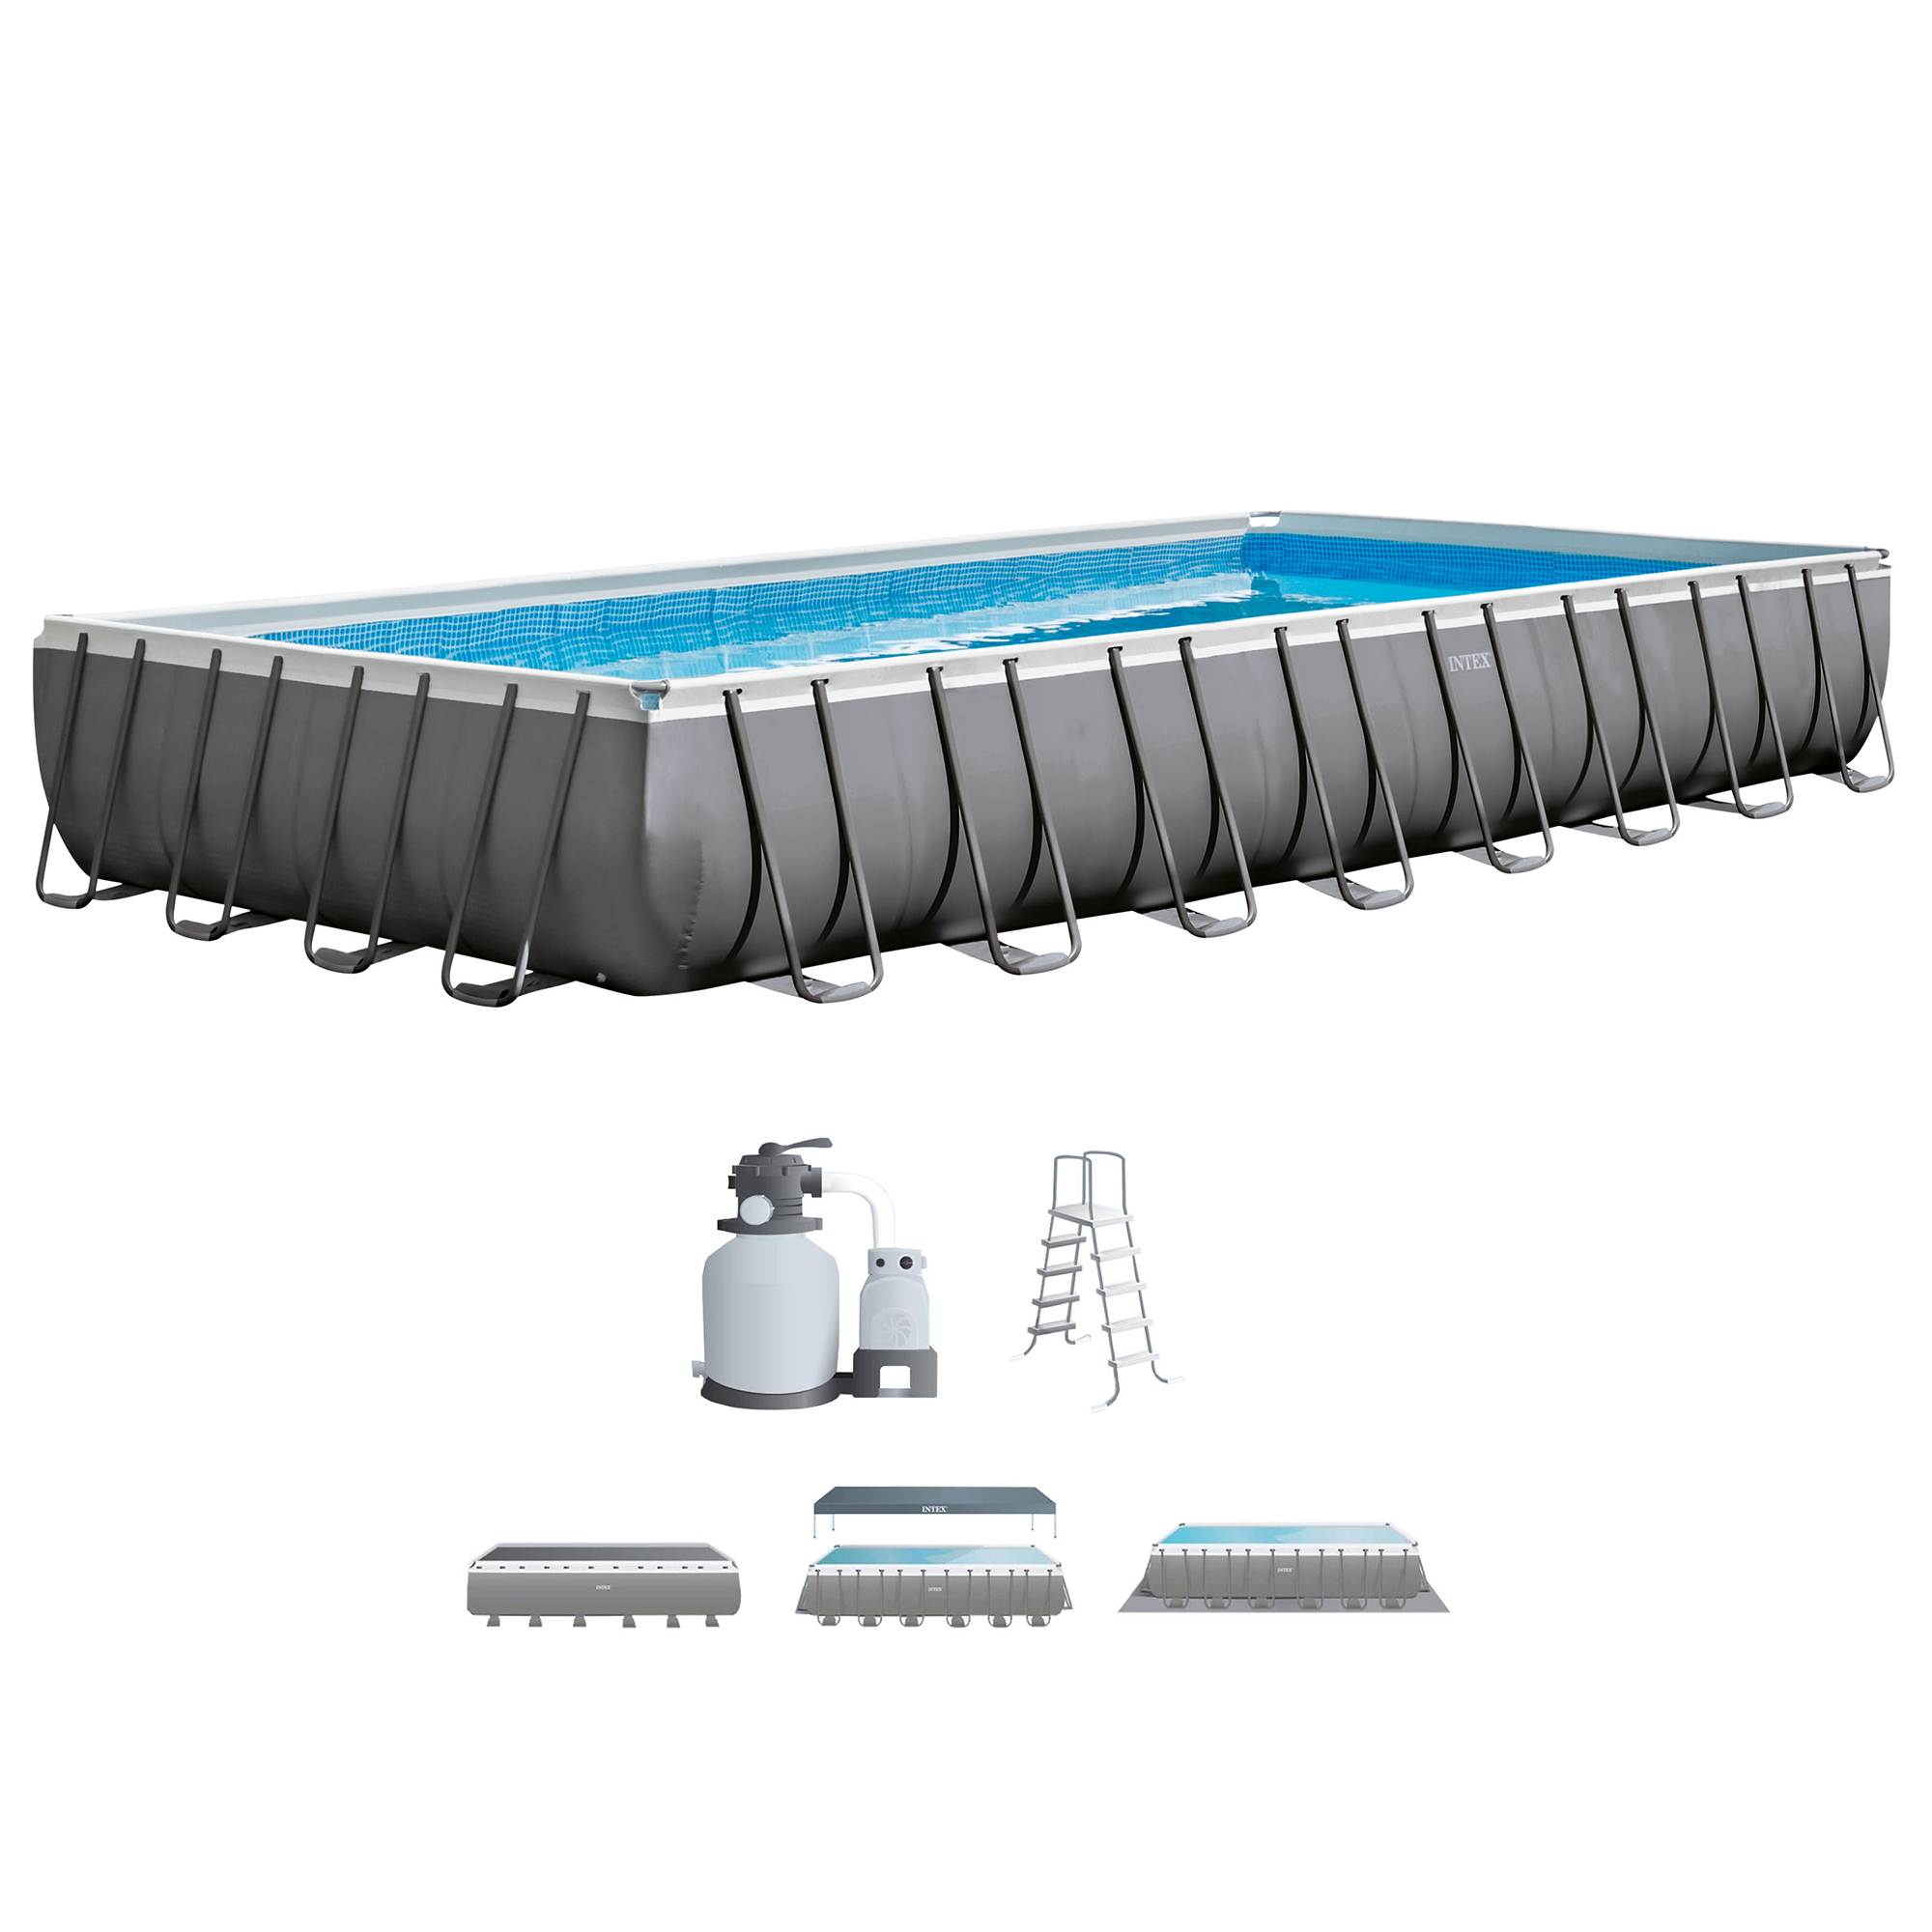 "Intex 32' x 16' x 52"" Rectangular Ultra Frame Above Ground Pool with Sand Filter Pump by INTEX TRADING LTD"